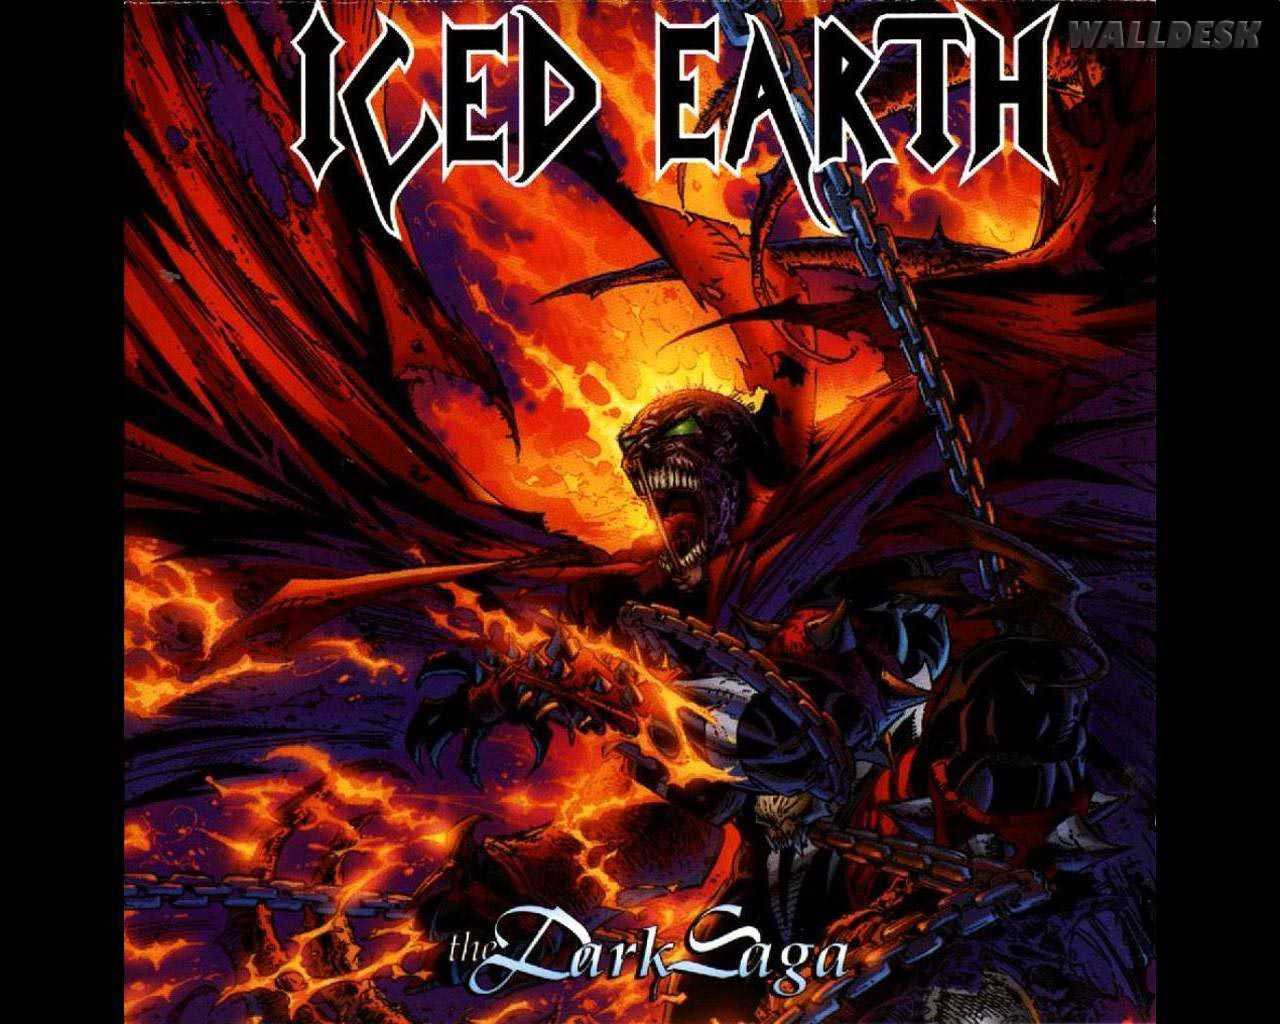 iced earth iphone 5 wallpaper gallery